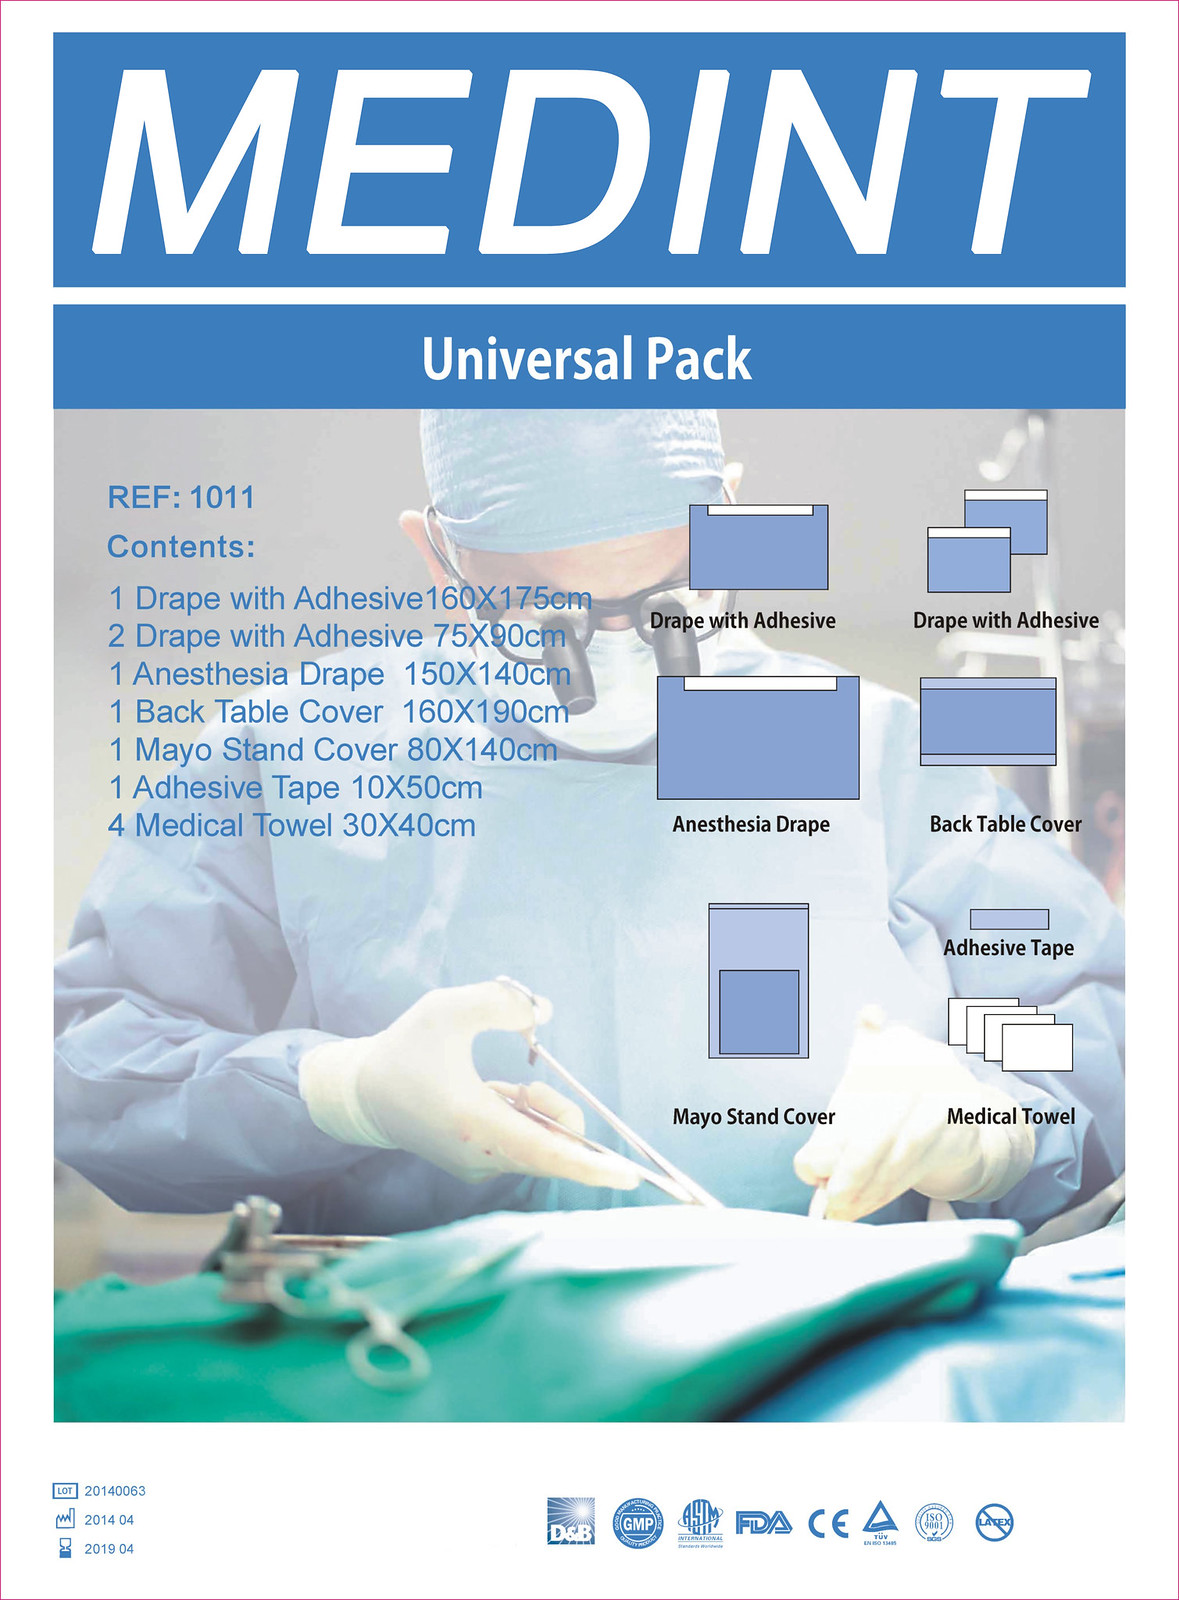 MEDINT Surgical Pack